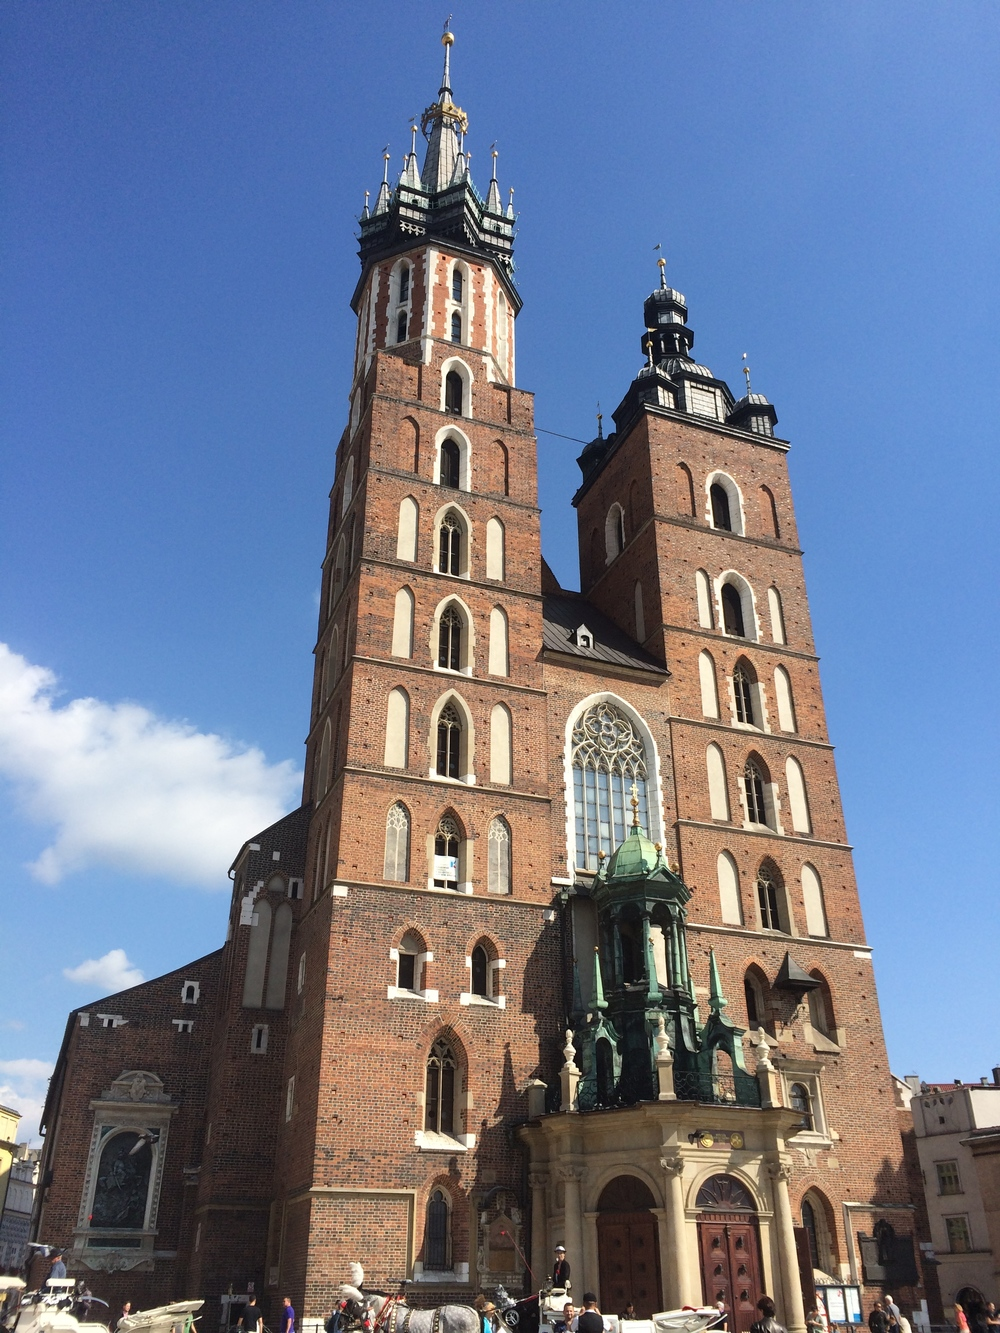 St. Mary's Basilica in old town Krakow.